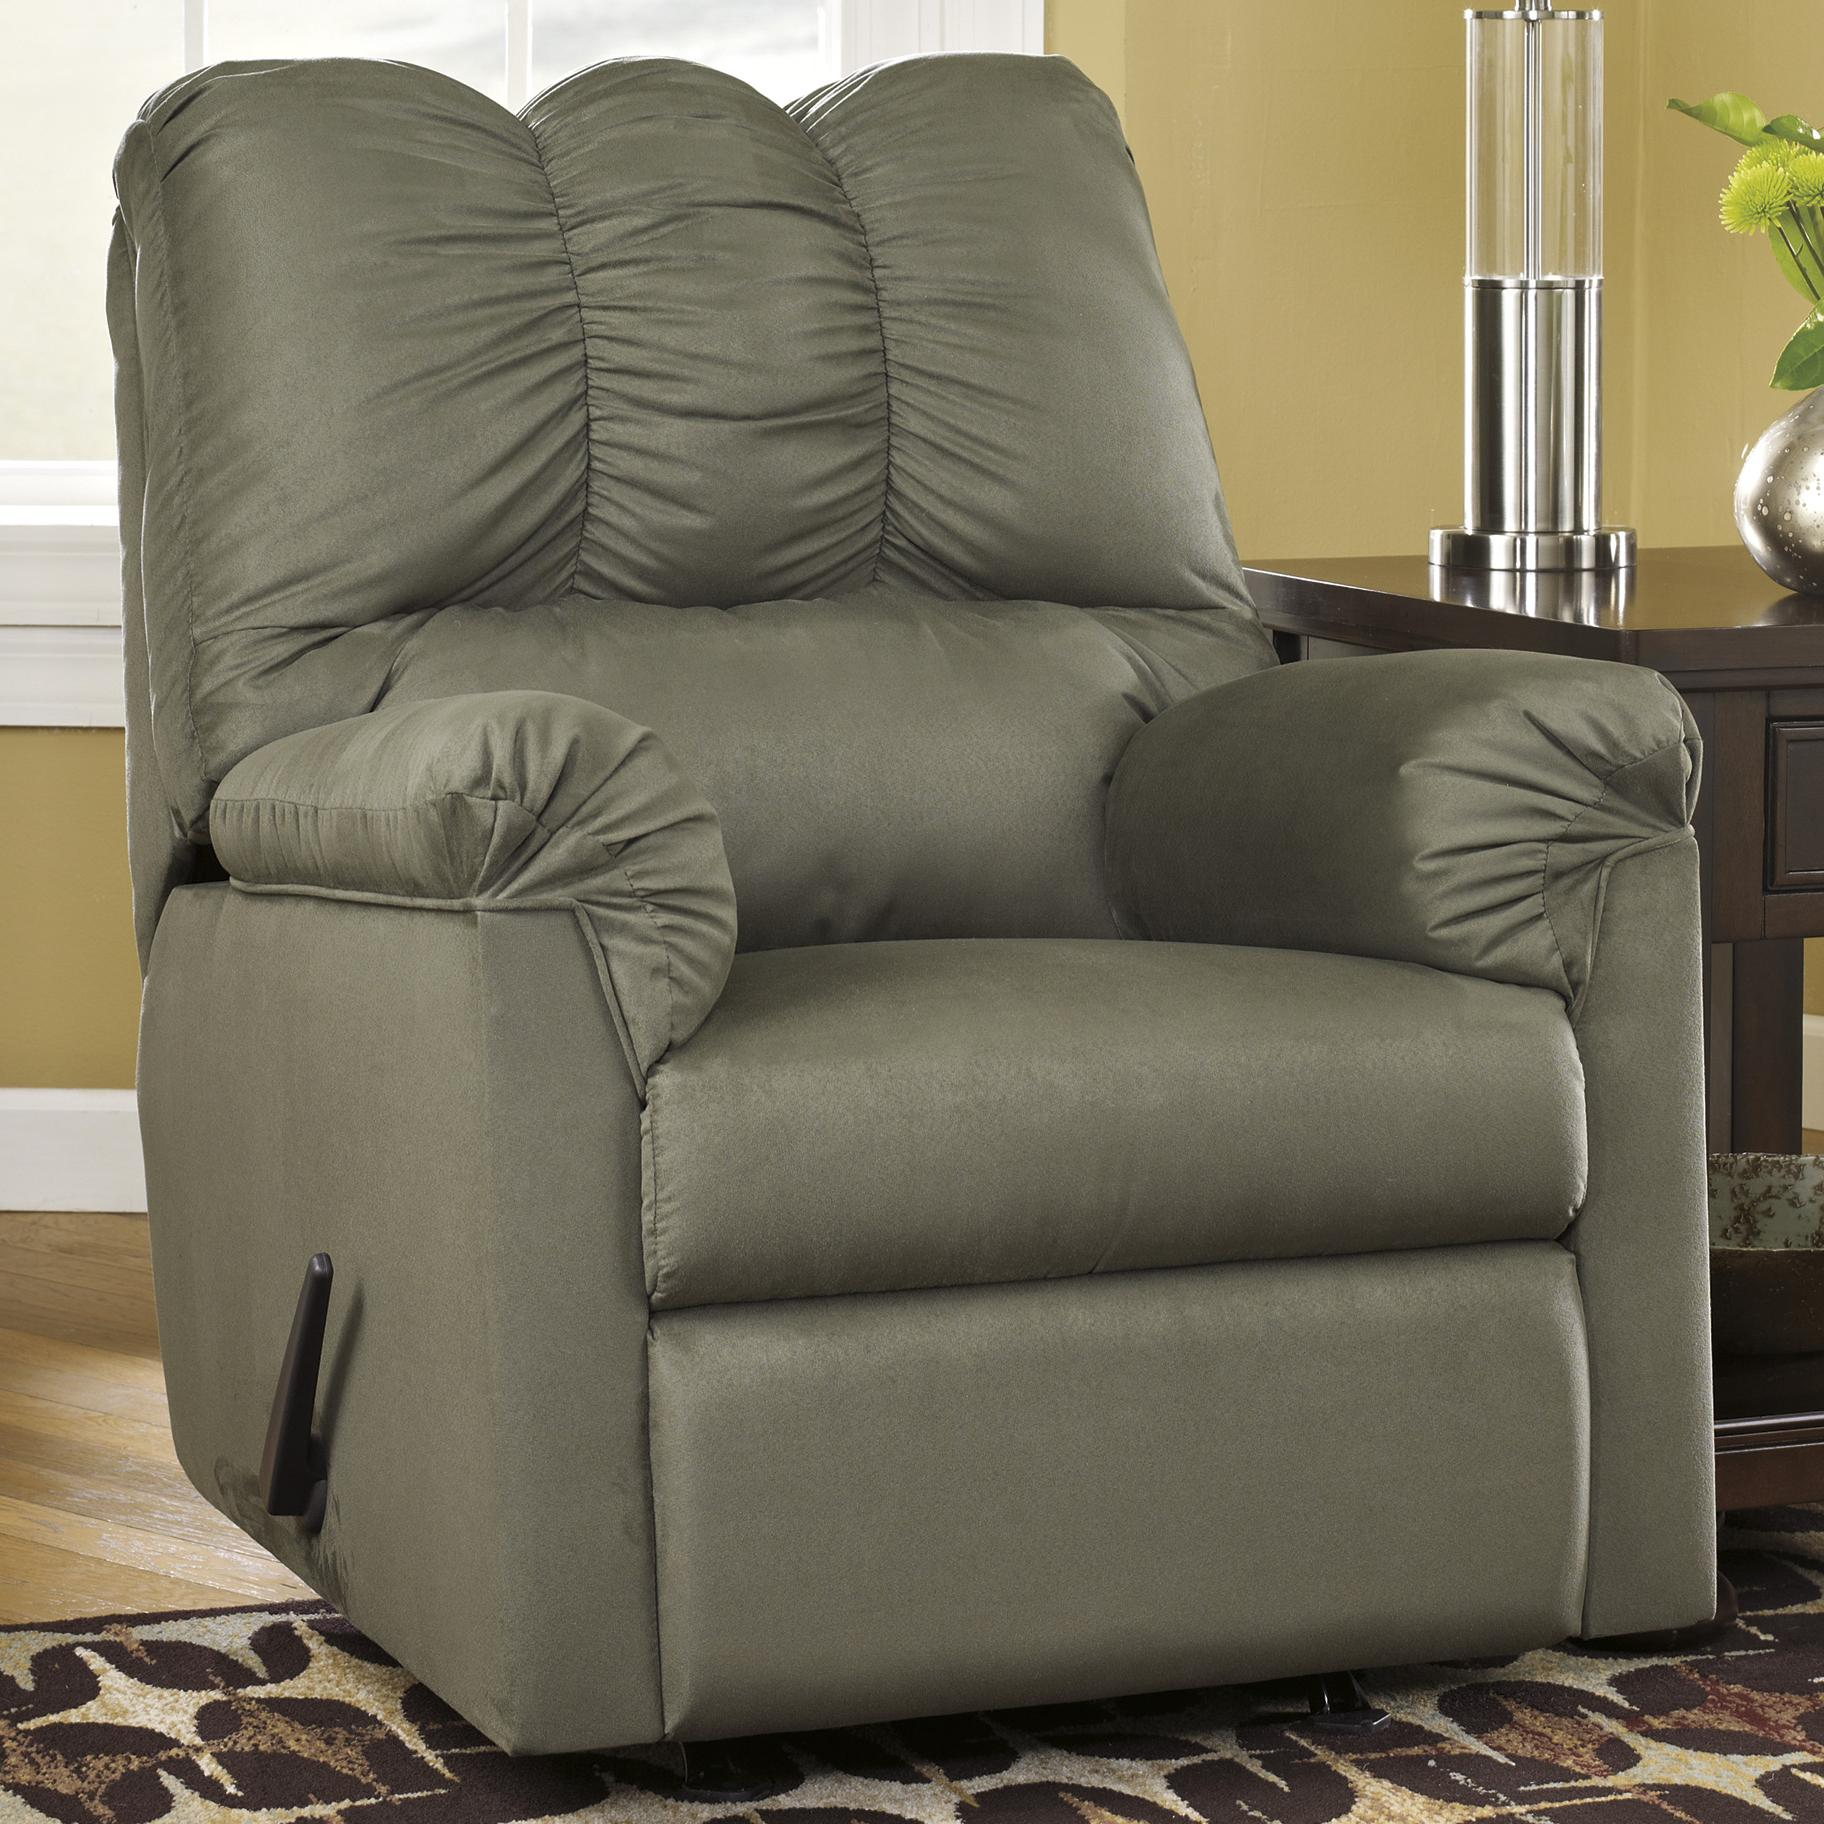 Signature Design by Ashley Darcy - Sage Rocker Recliner - Item Number: 7500325